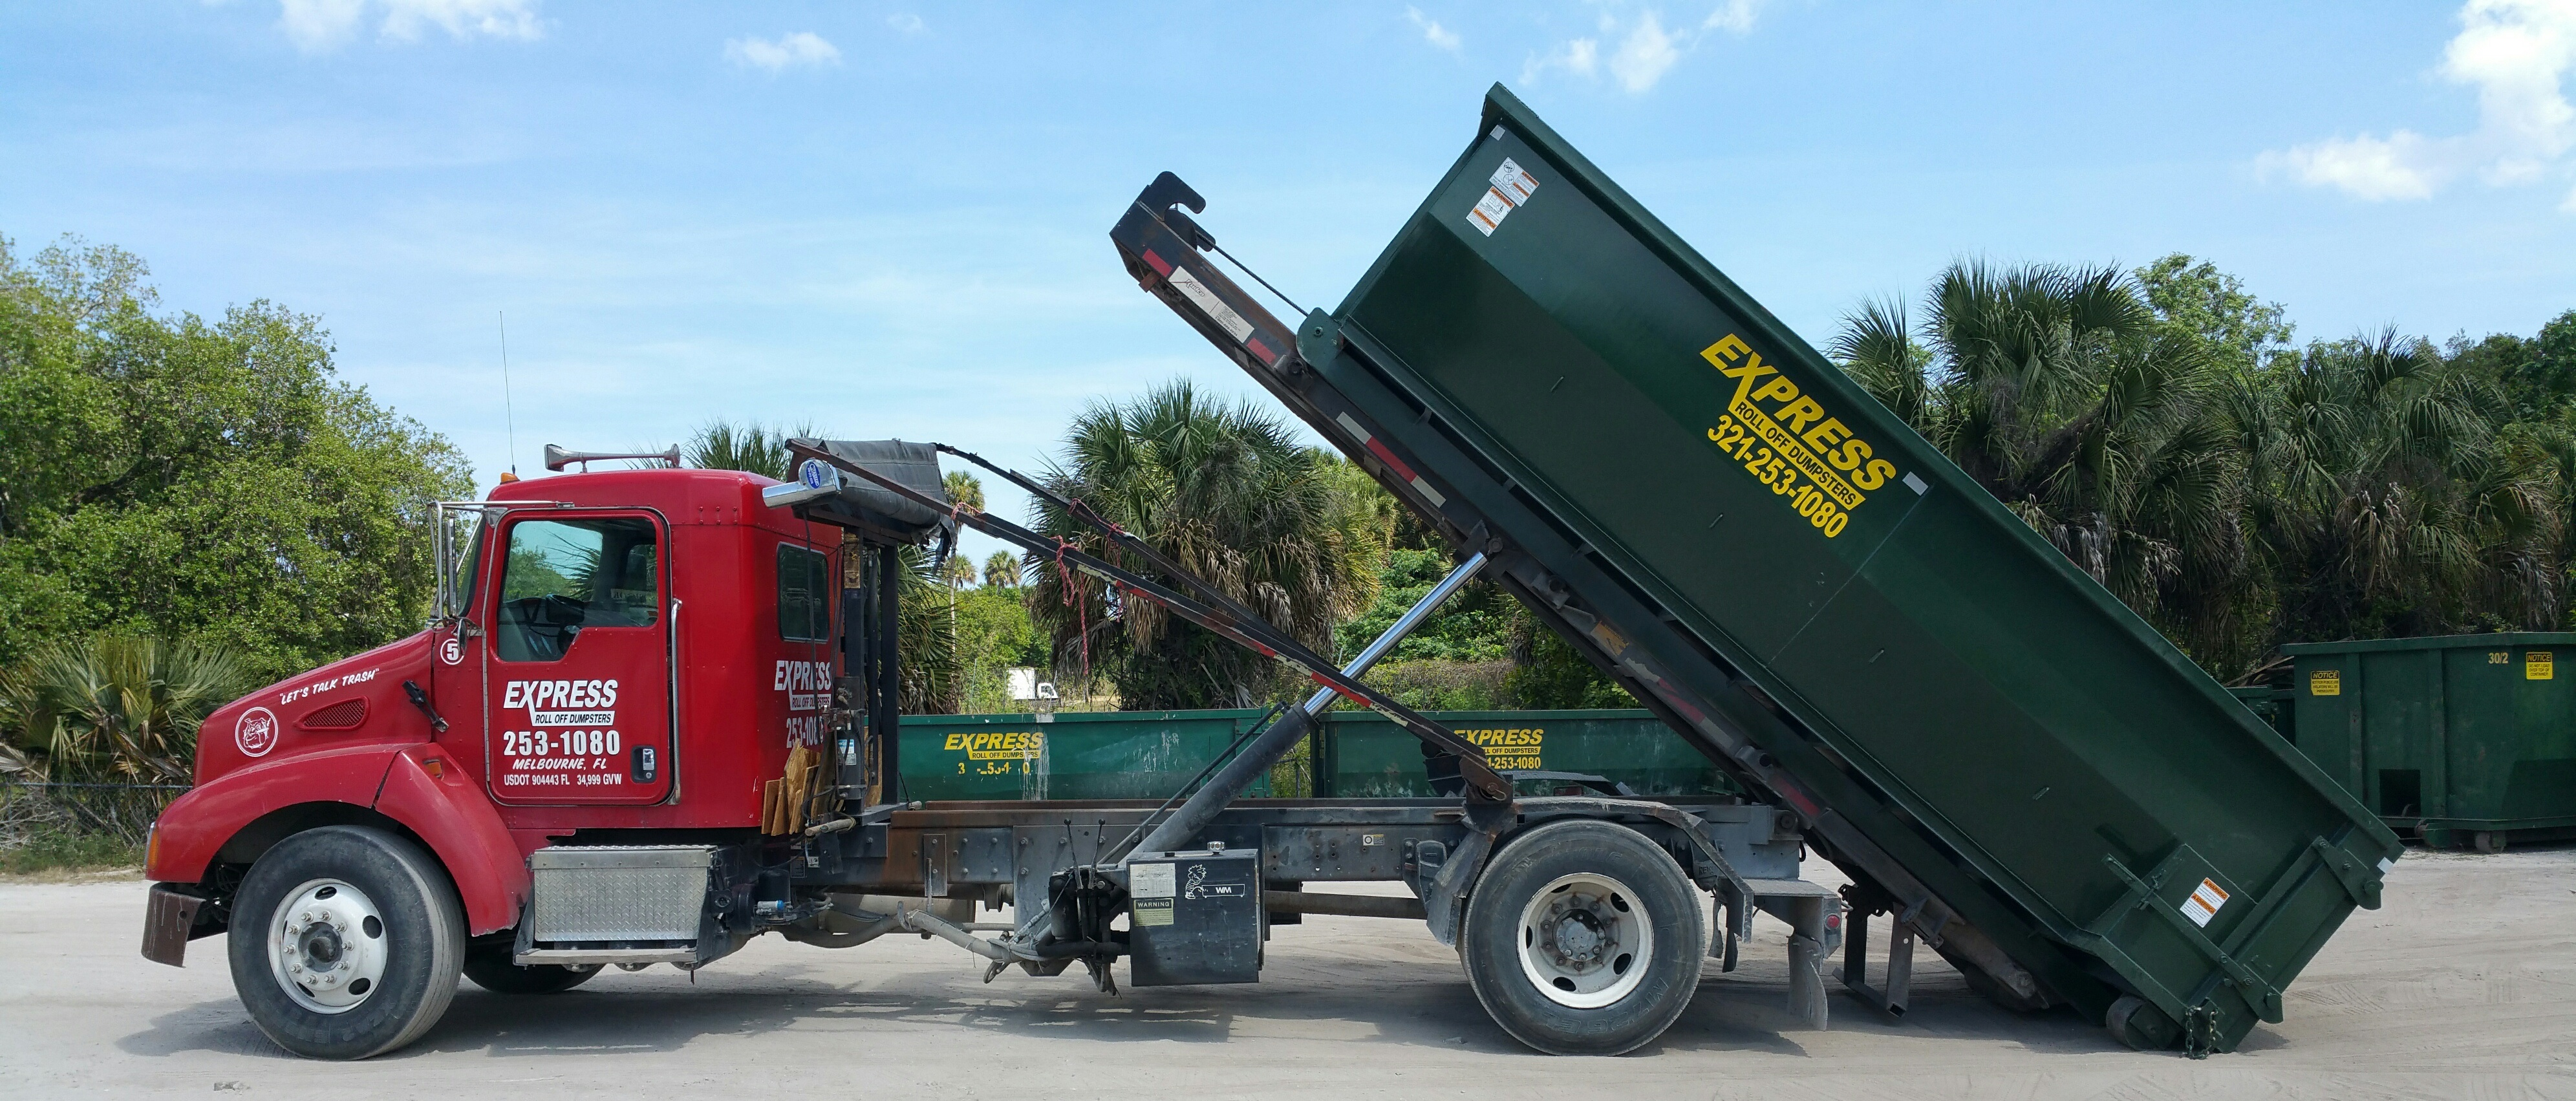 I need a dumpster rental in Melbourne fl